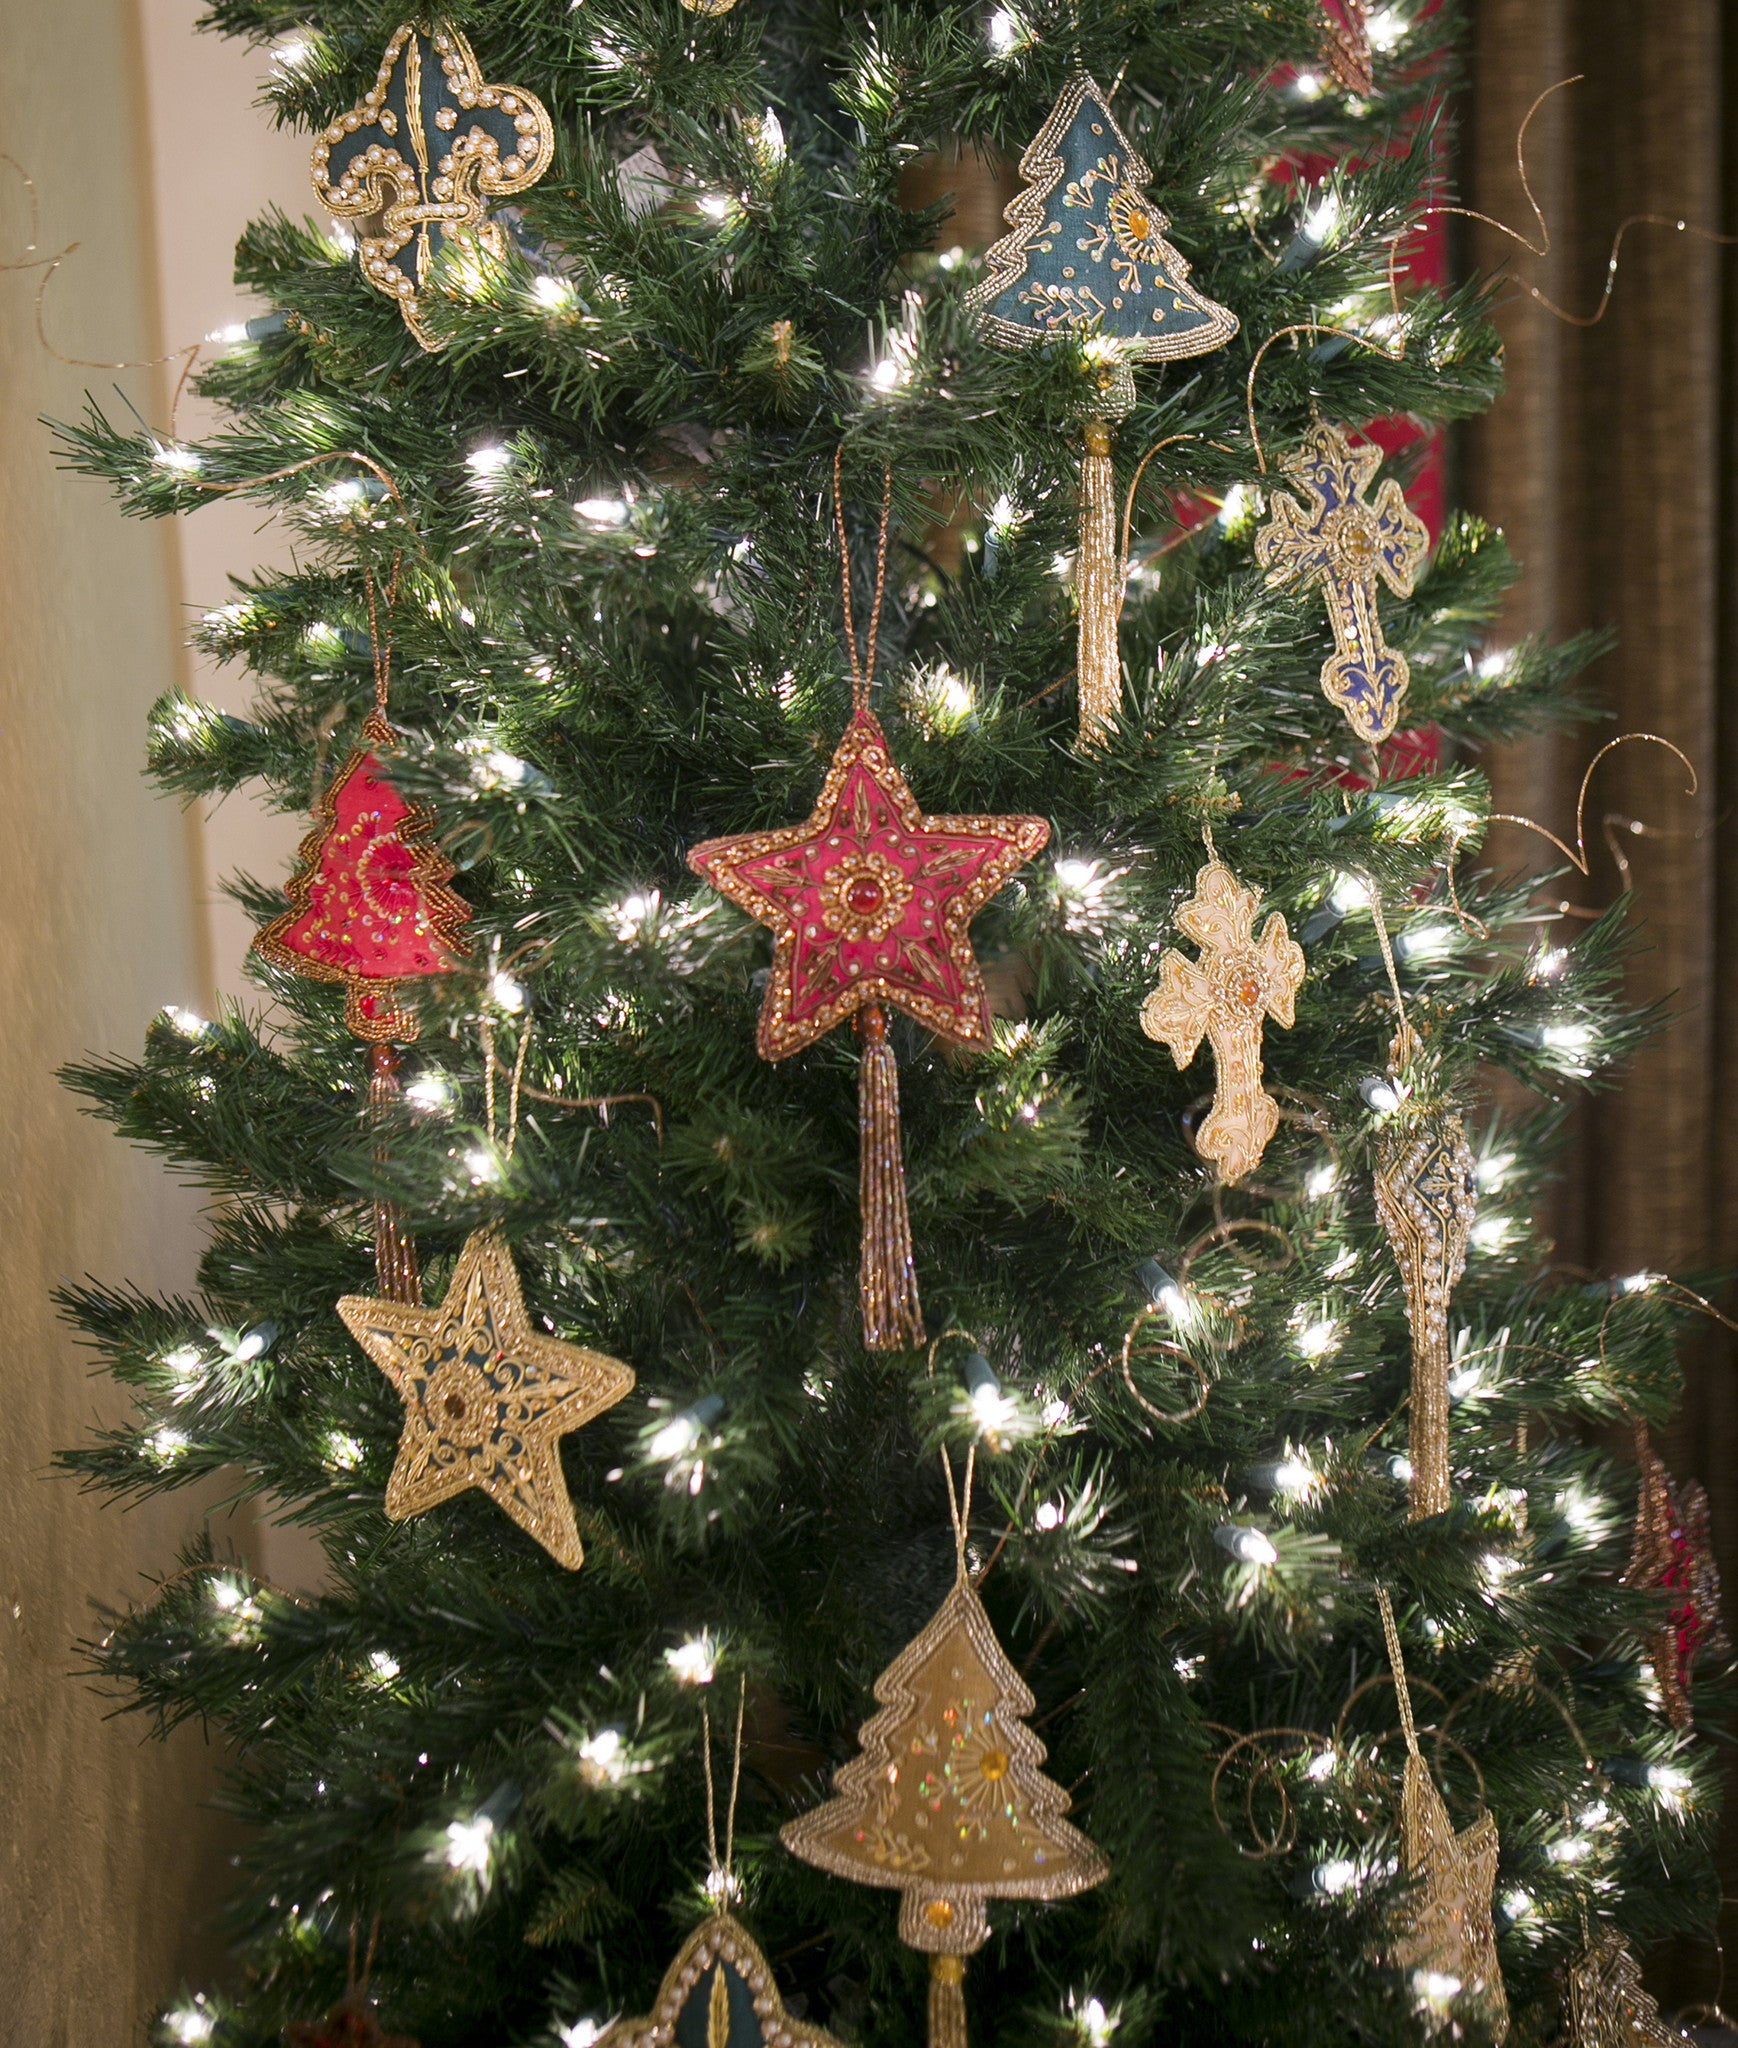 These ornaments will add sparkle and shine to your Christmas tree!